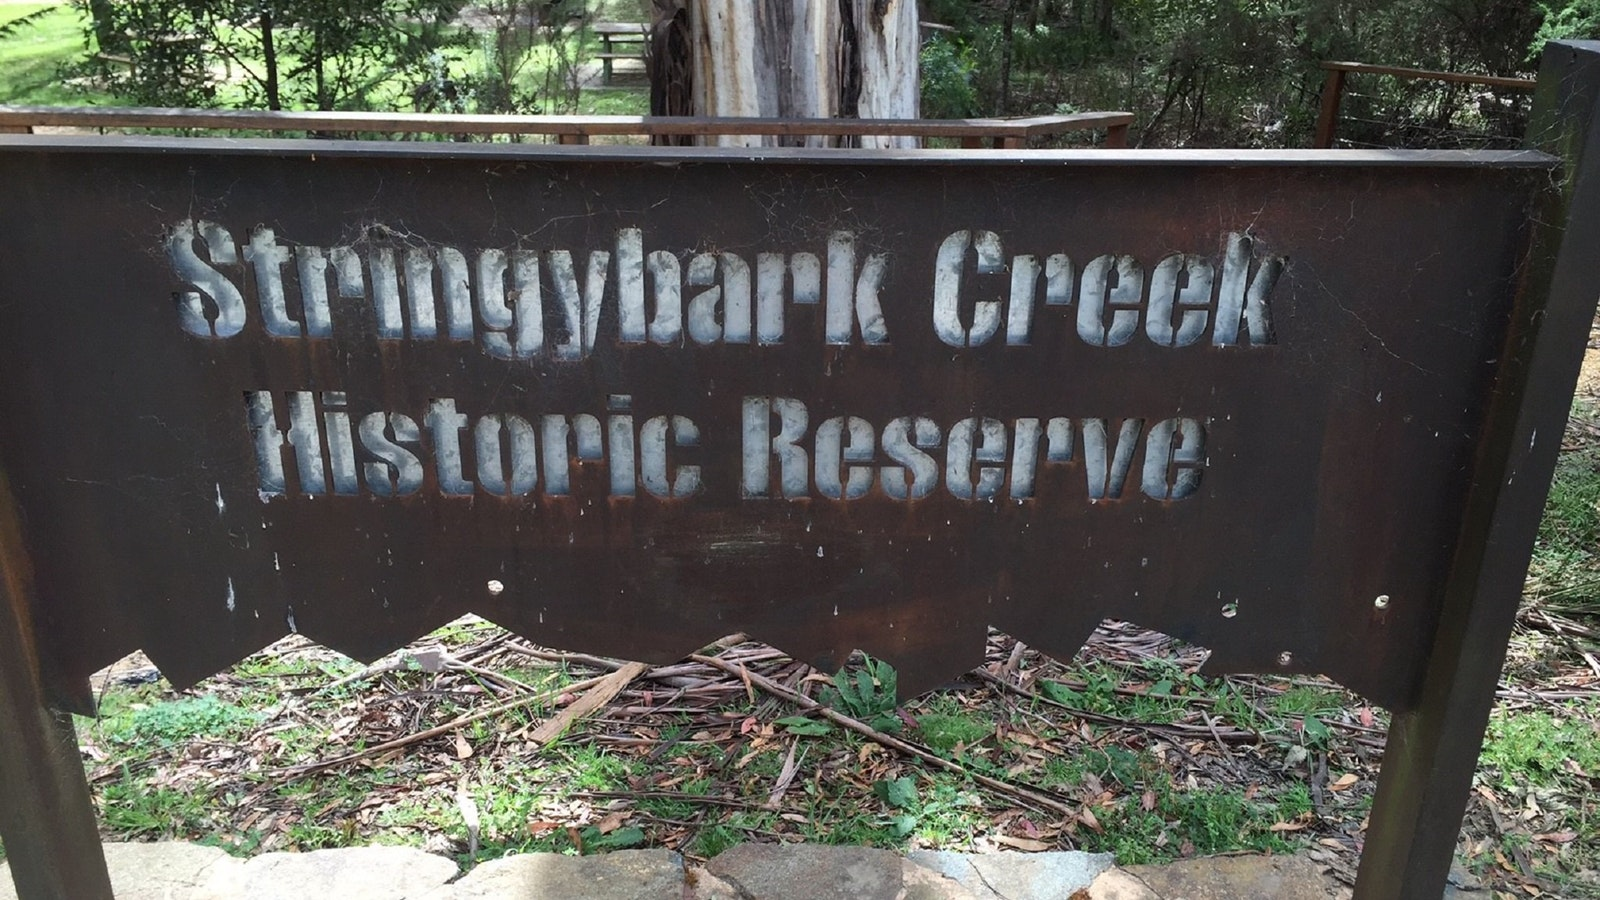 Stringybark Creek Historic Reserve